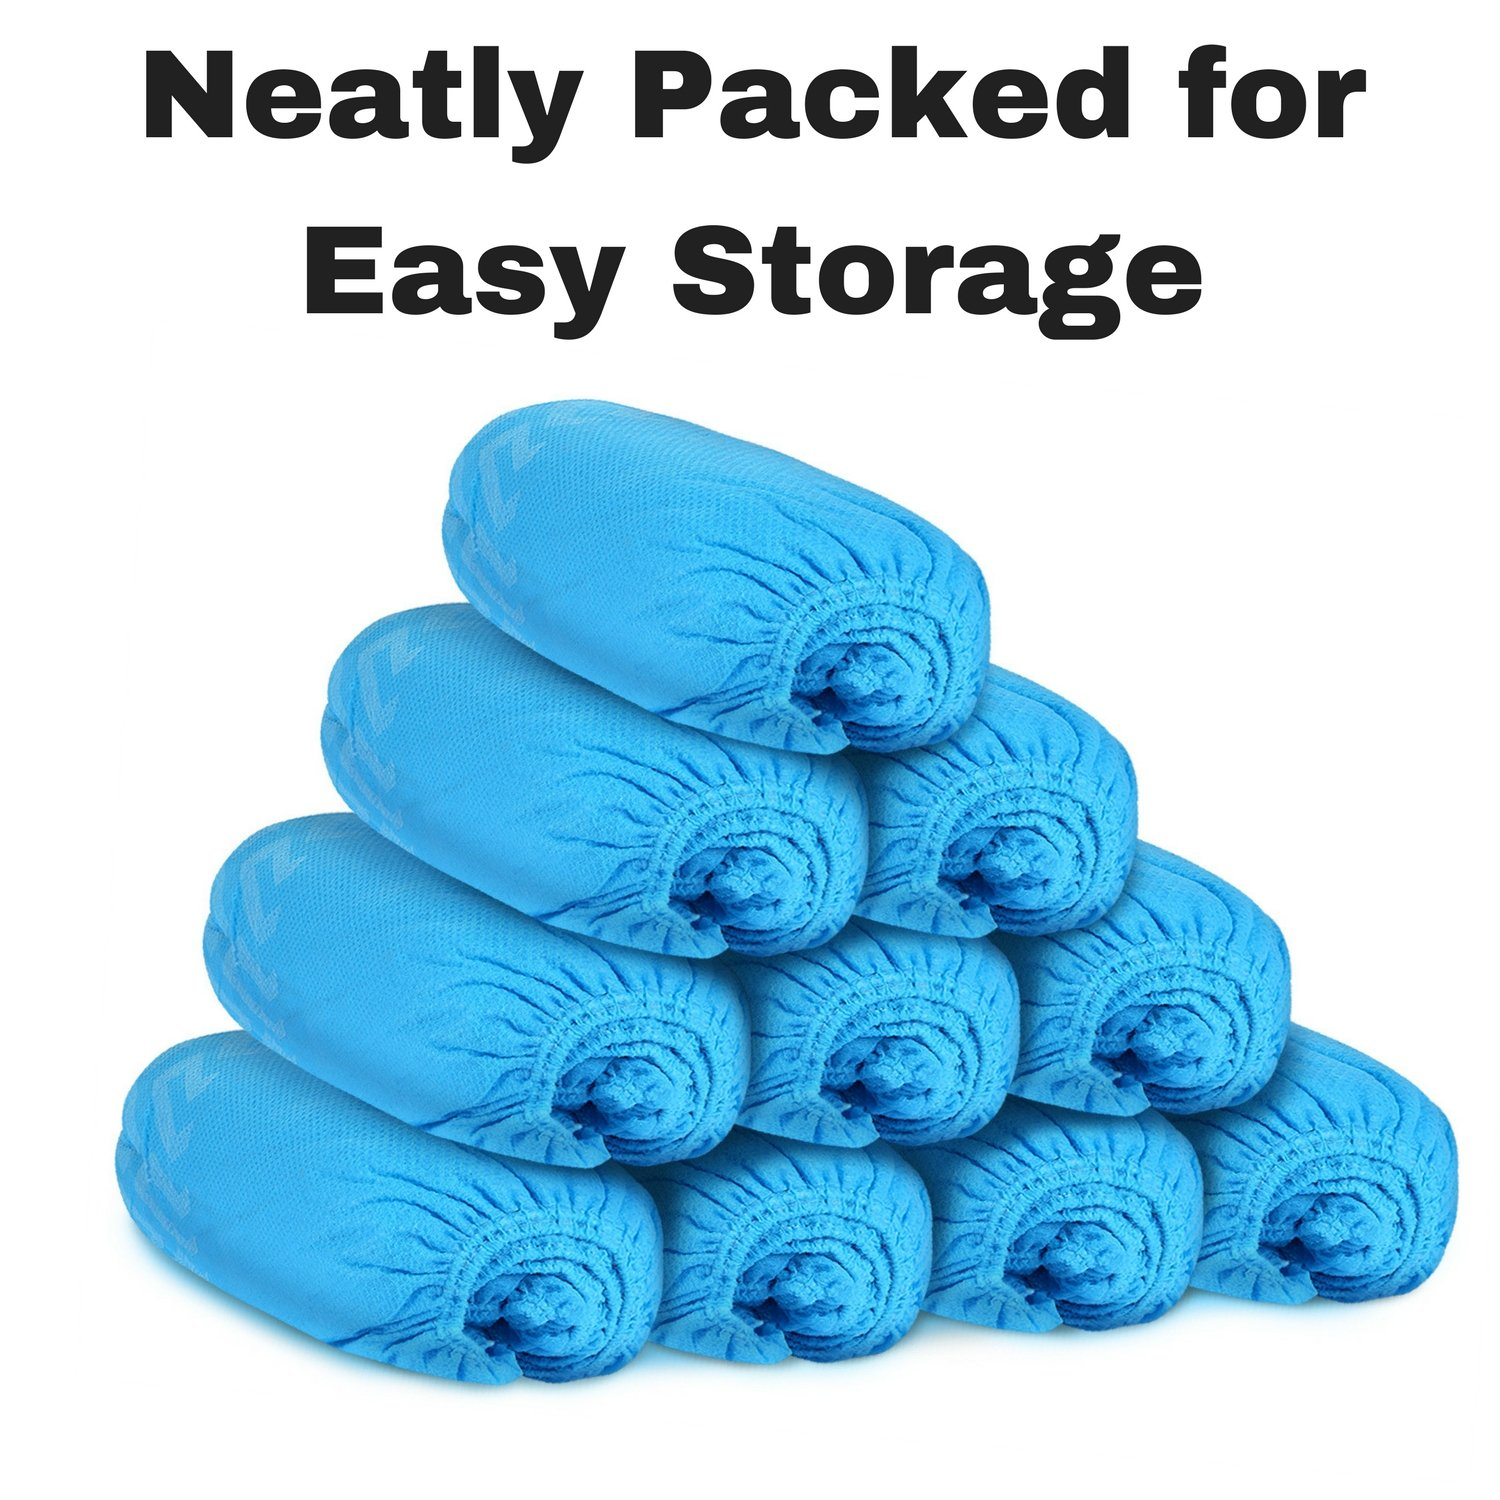 MIFFLIN Disposable Shoe Covers (Blue, 120 Pieces) Durable Boot Covers, Non-Slip Polypropylene, One Size Fits Most by MIFFLIN (Image #7)